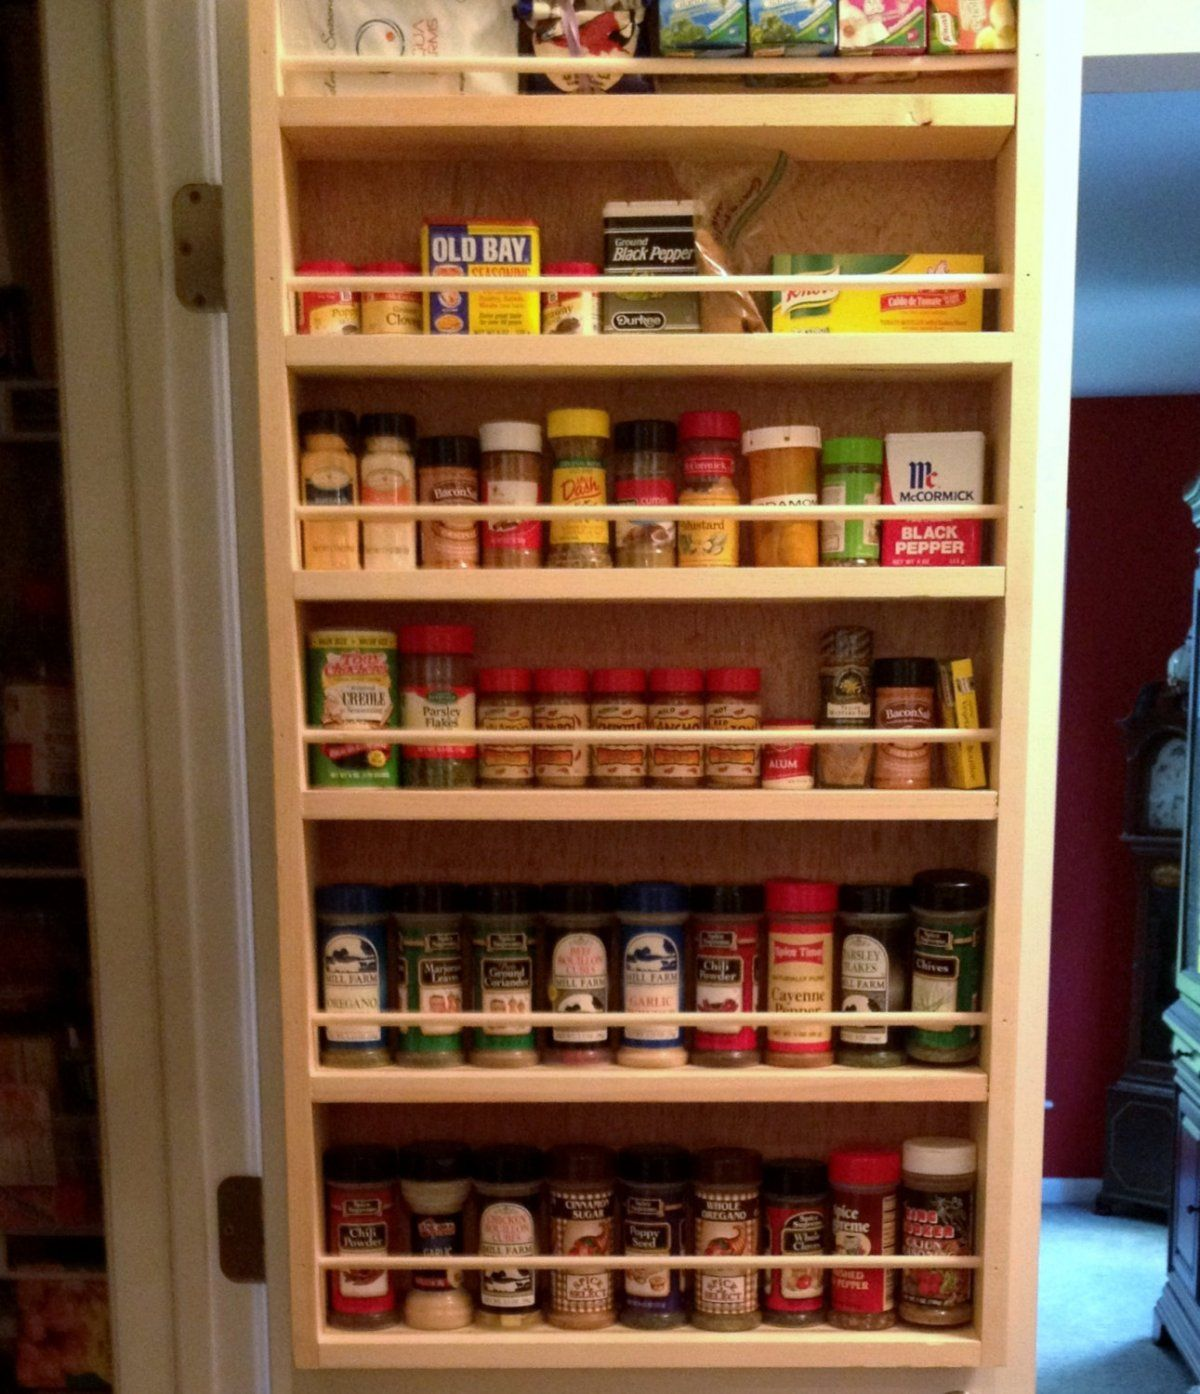 Spice Rack On Inside Of Pantry Doors Ideas For The